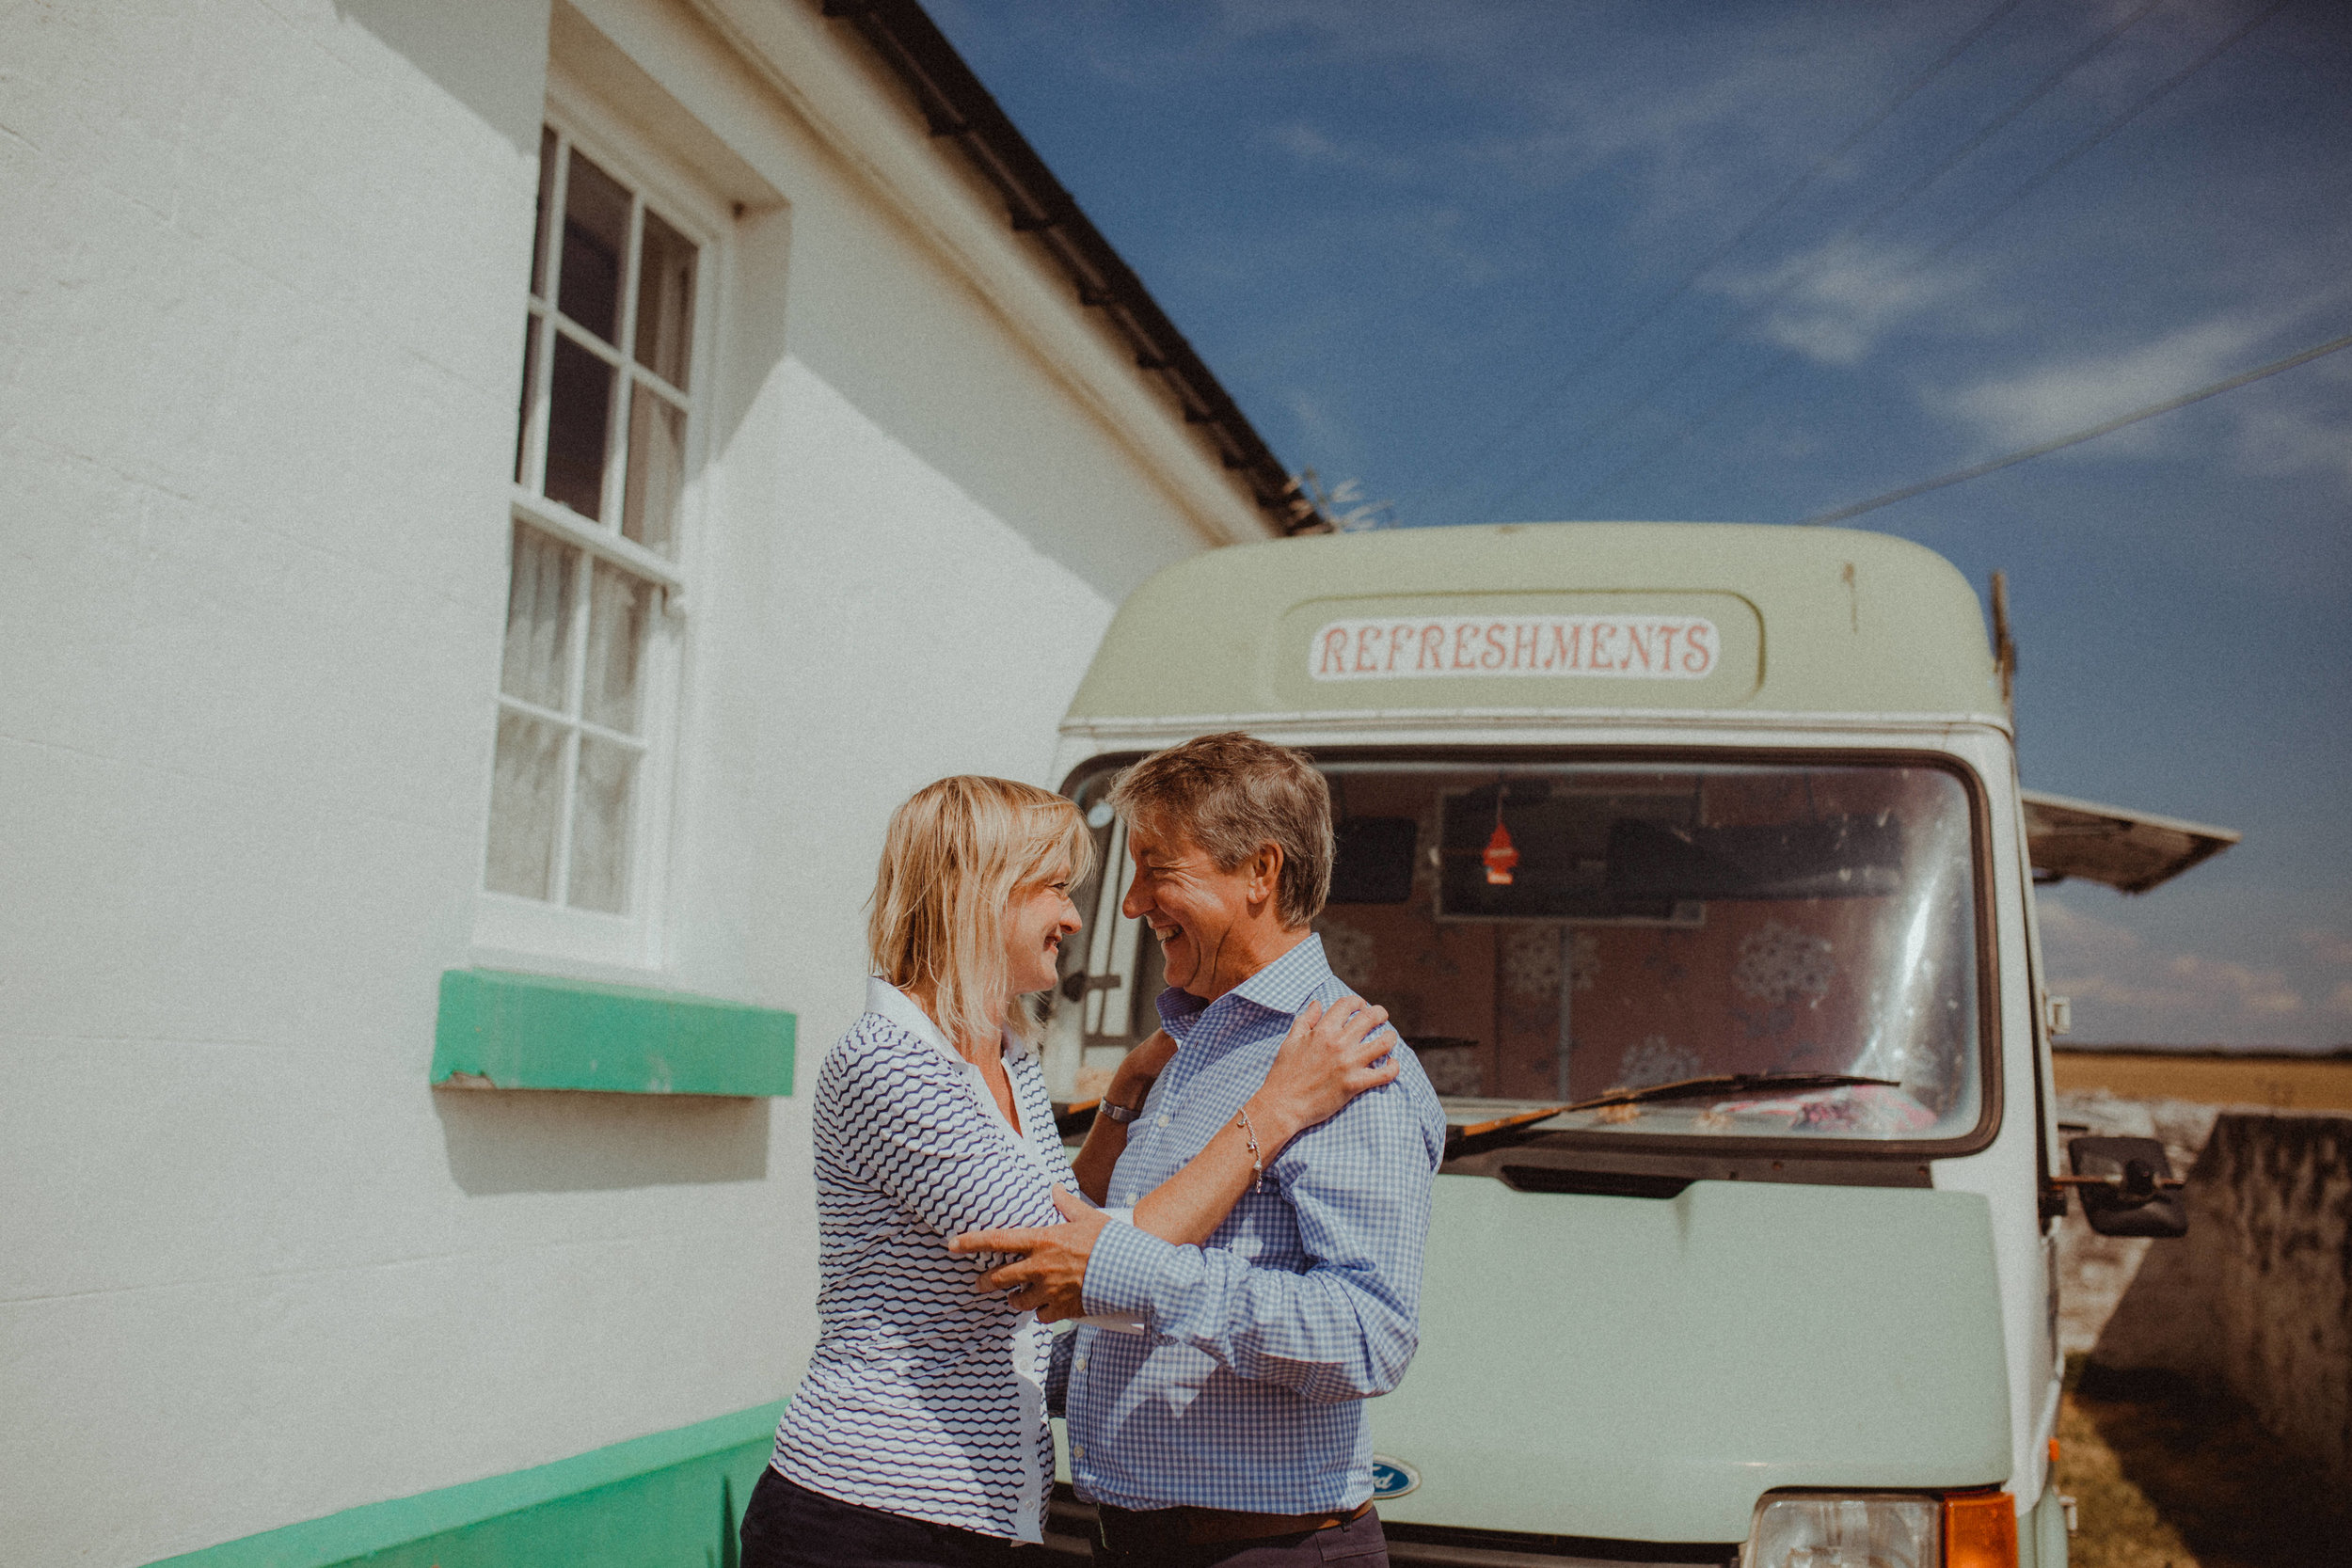 debbie&andrew-pre-wedding-86.jpg